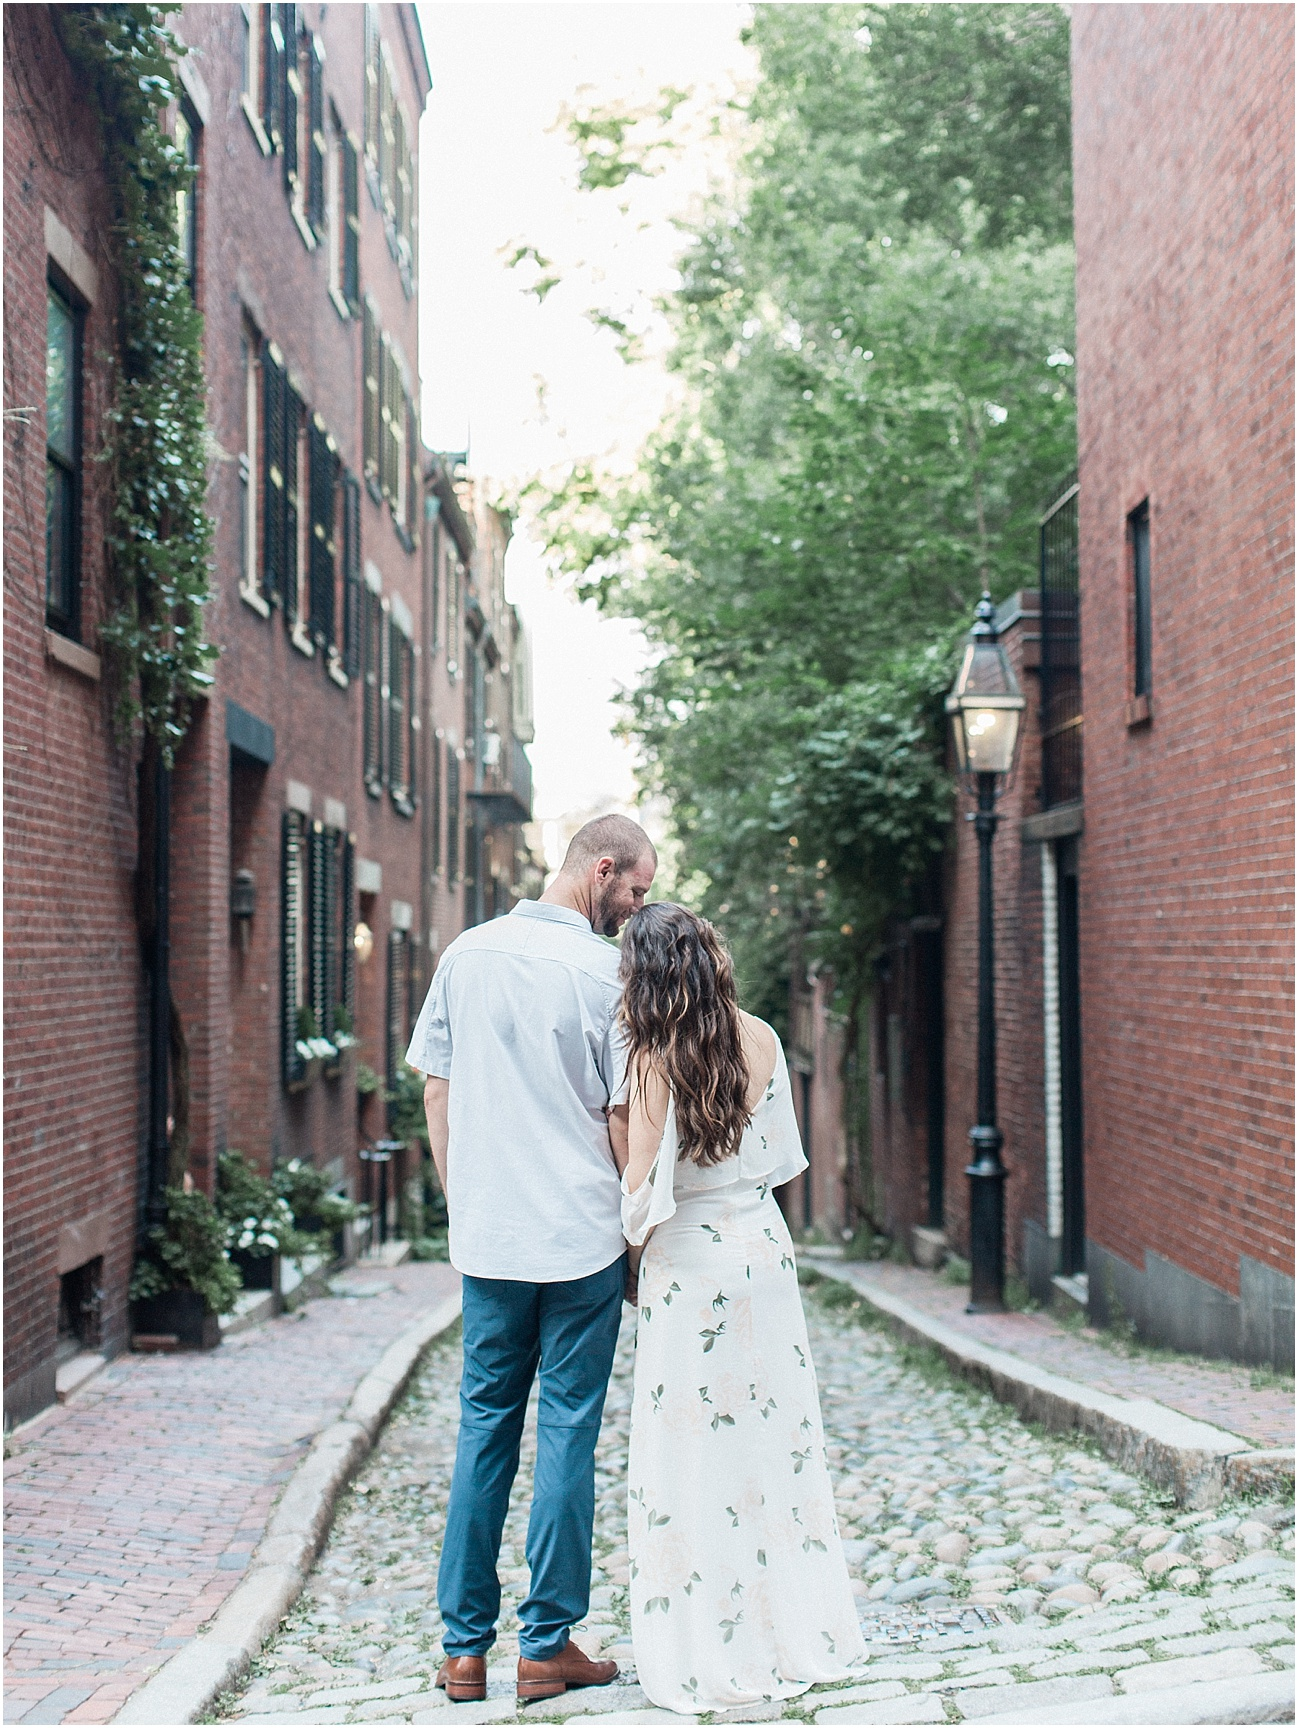 christina_frank_common_engagement_acorn_street_back_bay_cape_cod_boston_wedding_photographer_meredith_jane_photography_photo_0727.jpg